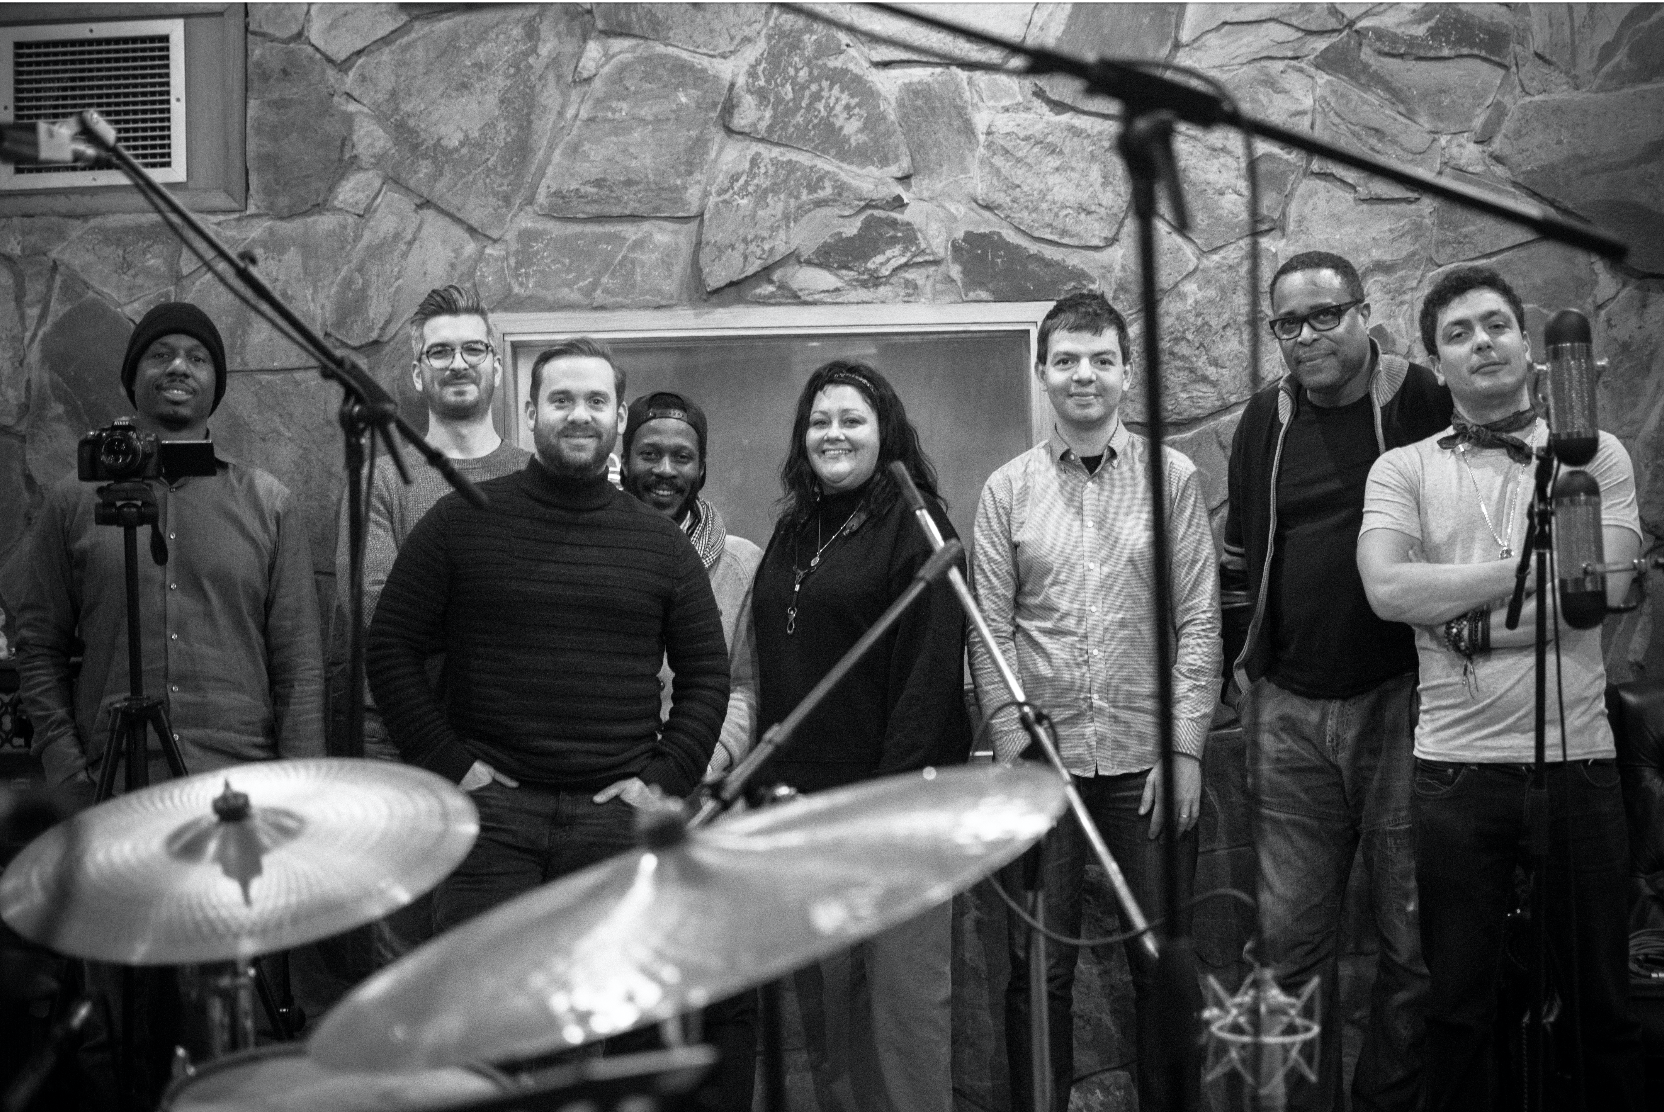 Left to Right: Willie Jones III, Leo Richardson, Quentin Collins, Joe Sanders, Meilana Gillard, Dan Nimmer, Jean Toussaint, Tom Harrison (photograph: Goat Noise Photography)